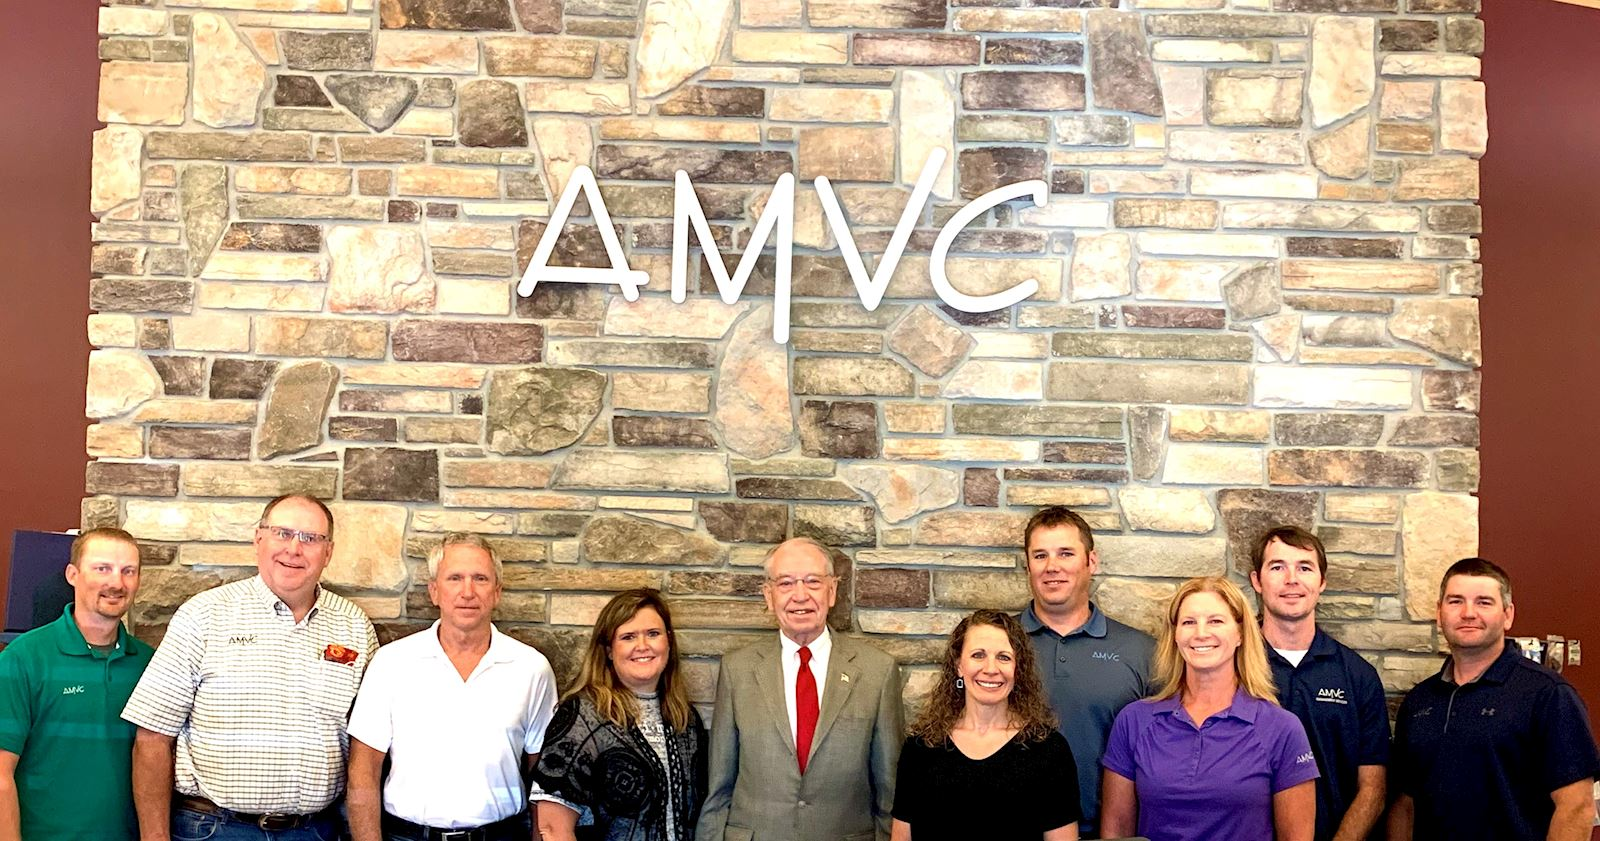 Sen. Grassley visits AMVC in Aububon, Iowa